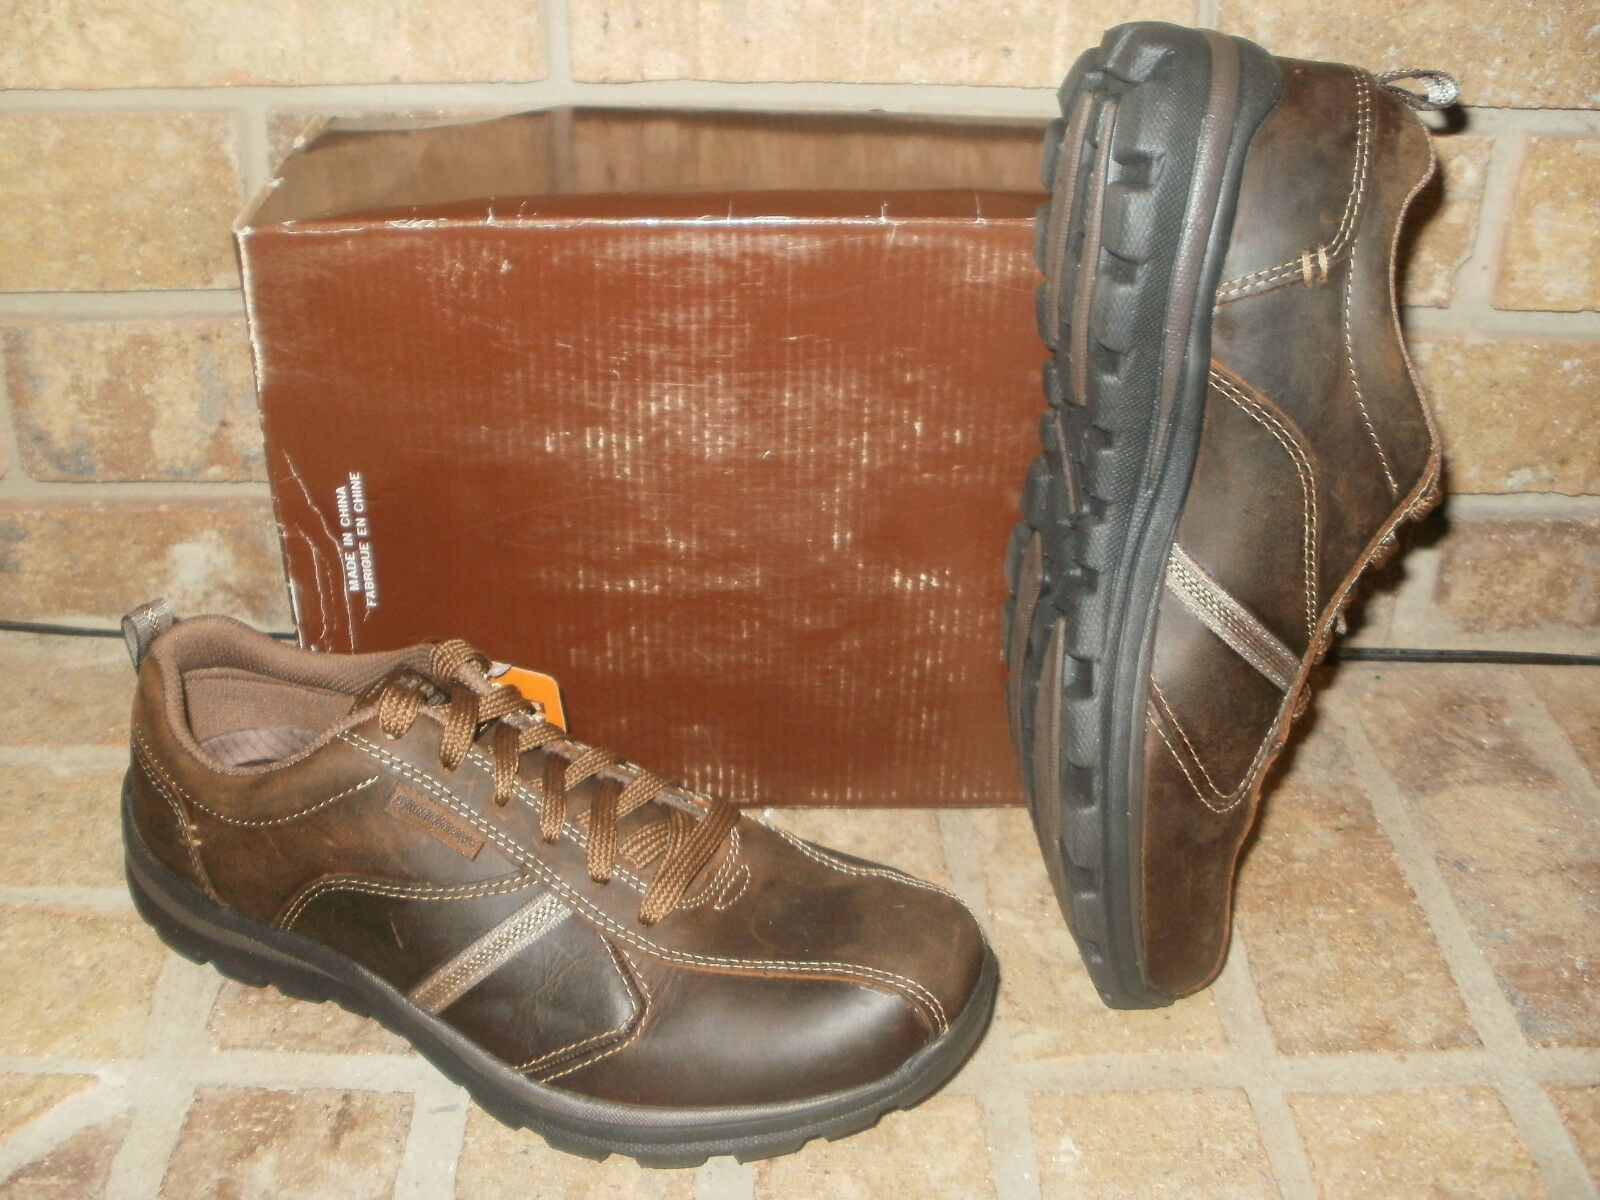 New Skechers Superior Levoy Dark Brown Leather Lace-up shoes 64224 CDB